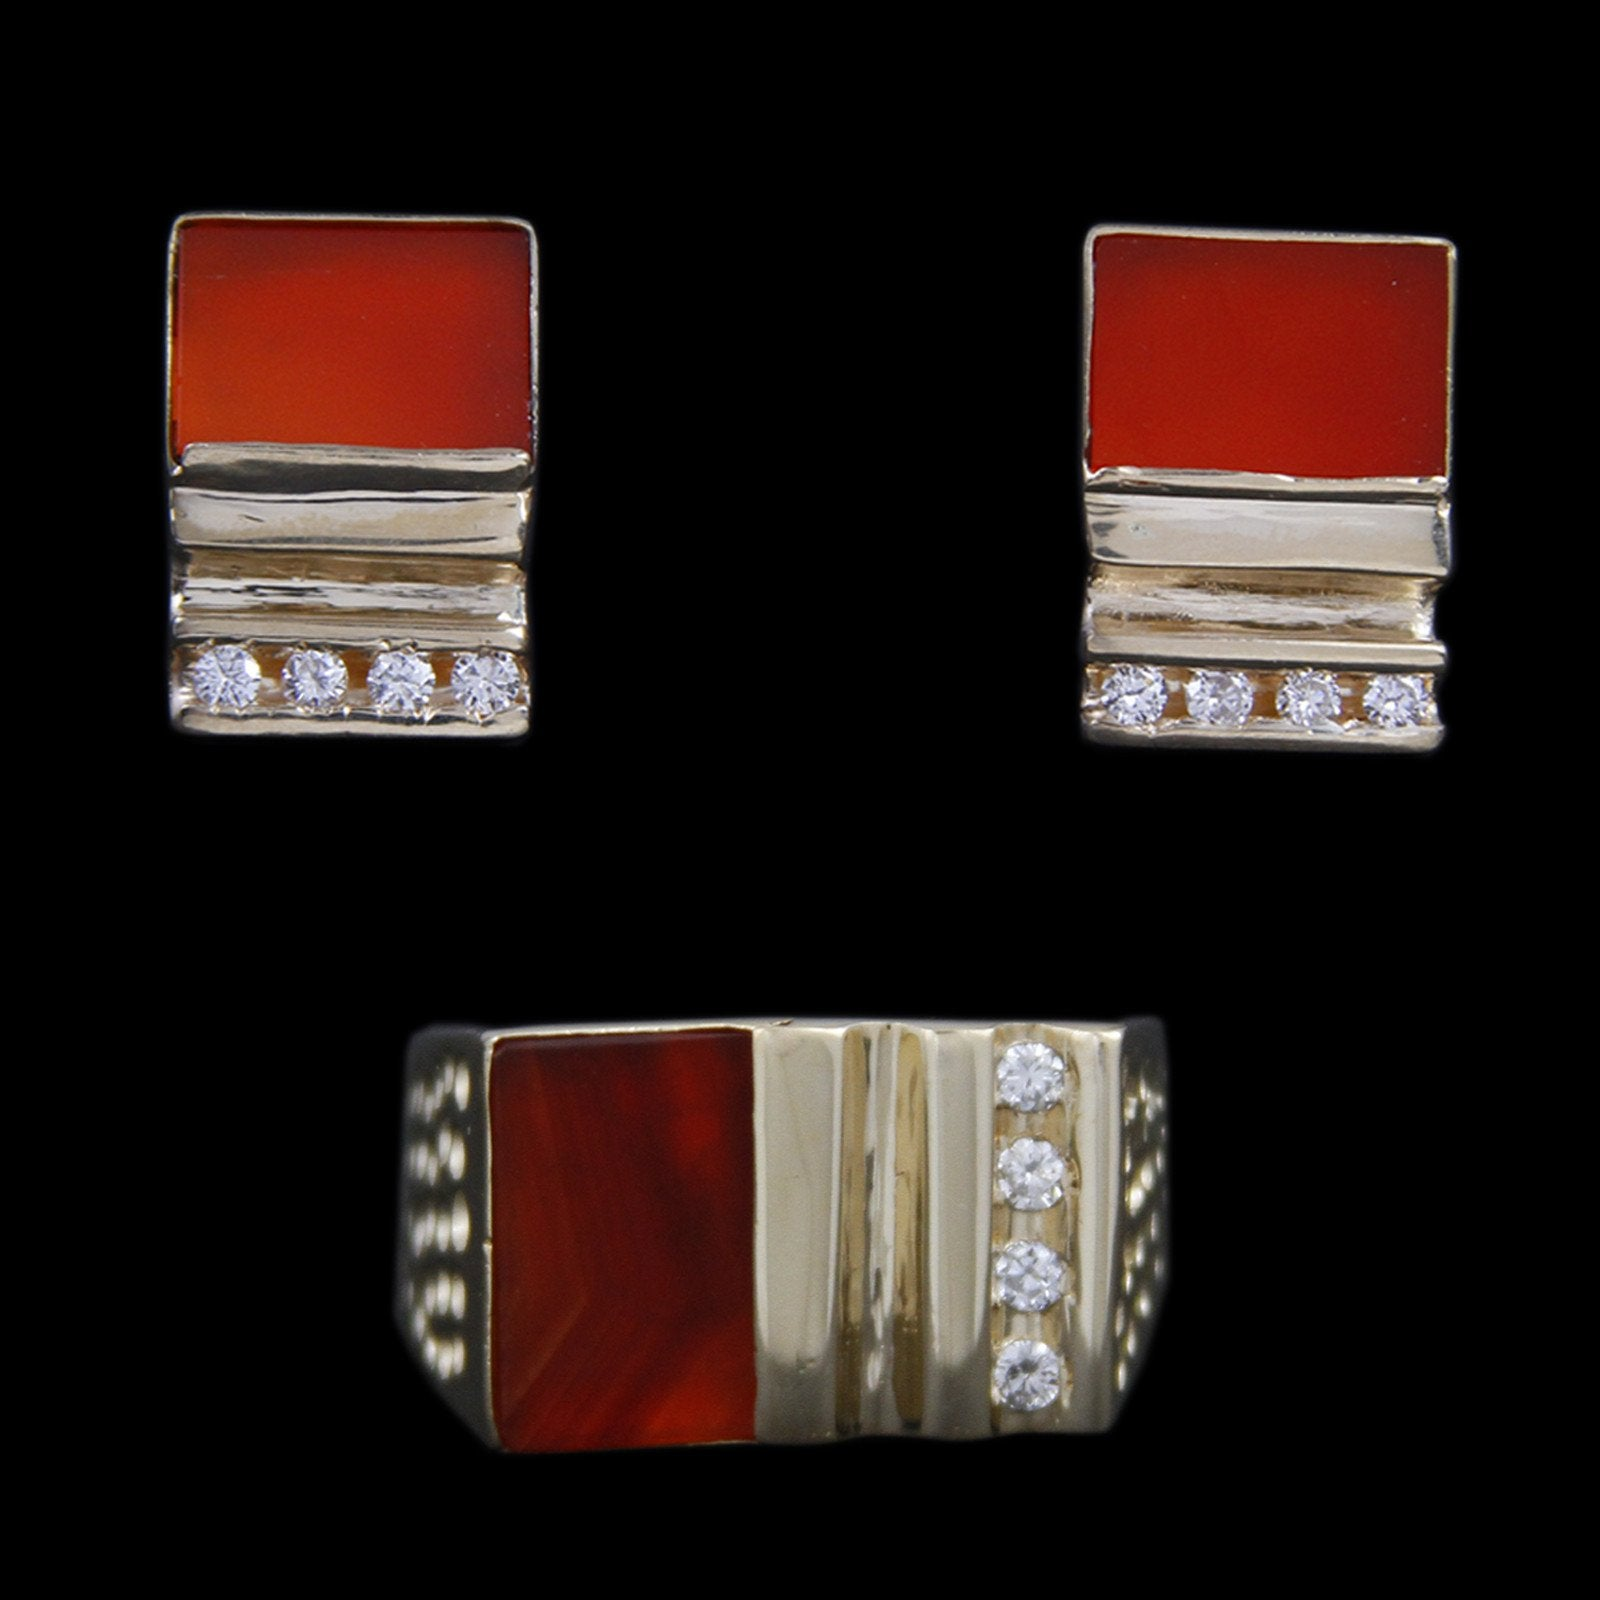 Gents Square Flat Set Sardonyx with Channel Set Diamonds & Dimpled Sides in 14K Yellow Gold-3